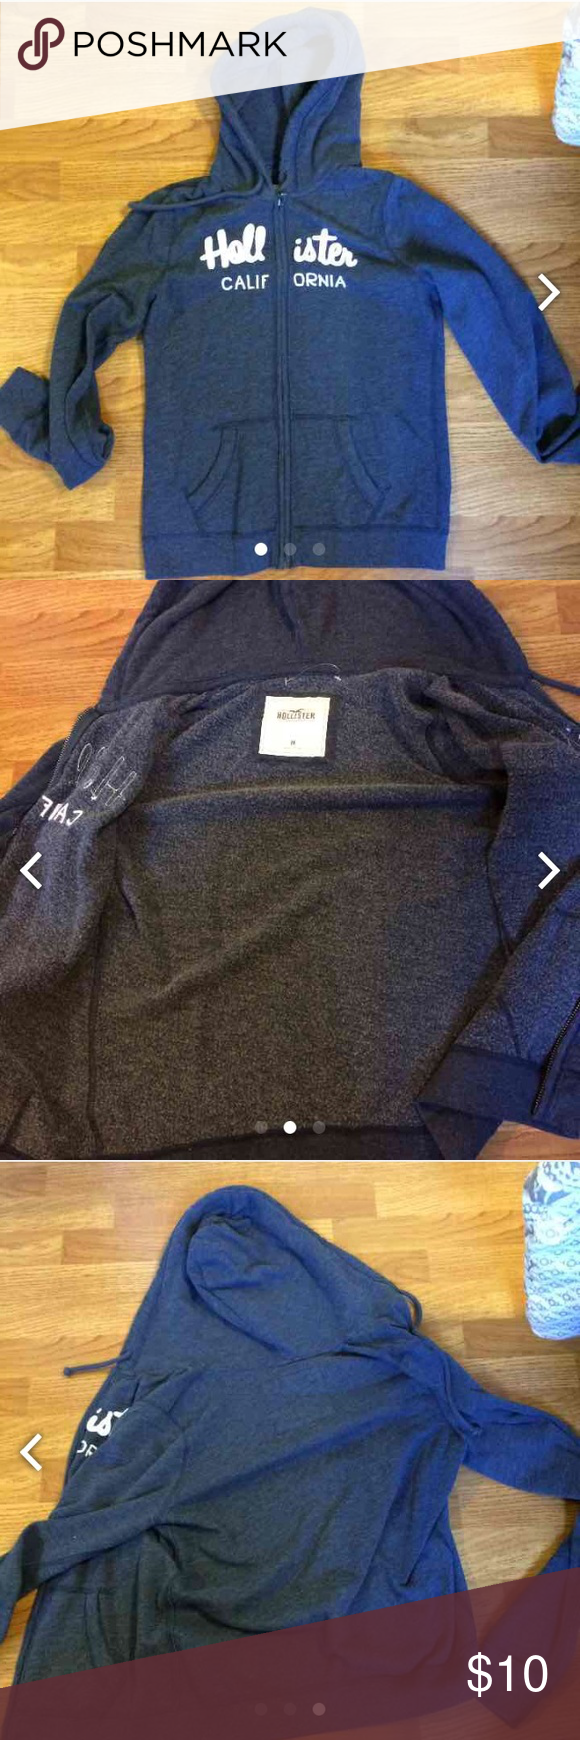 Hollister navy blue jacket Navy blue fleece jacket from Hollister! Worn less than 5 times! Has white writing on the front and two pockets on the front! Has a drawstring on the hood. Cheaper on merc, same user. Hollister Tops Sweatshirts & Hoodies